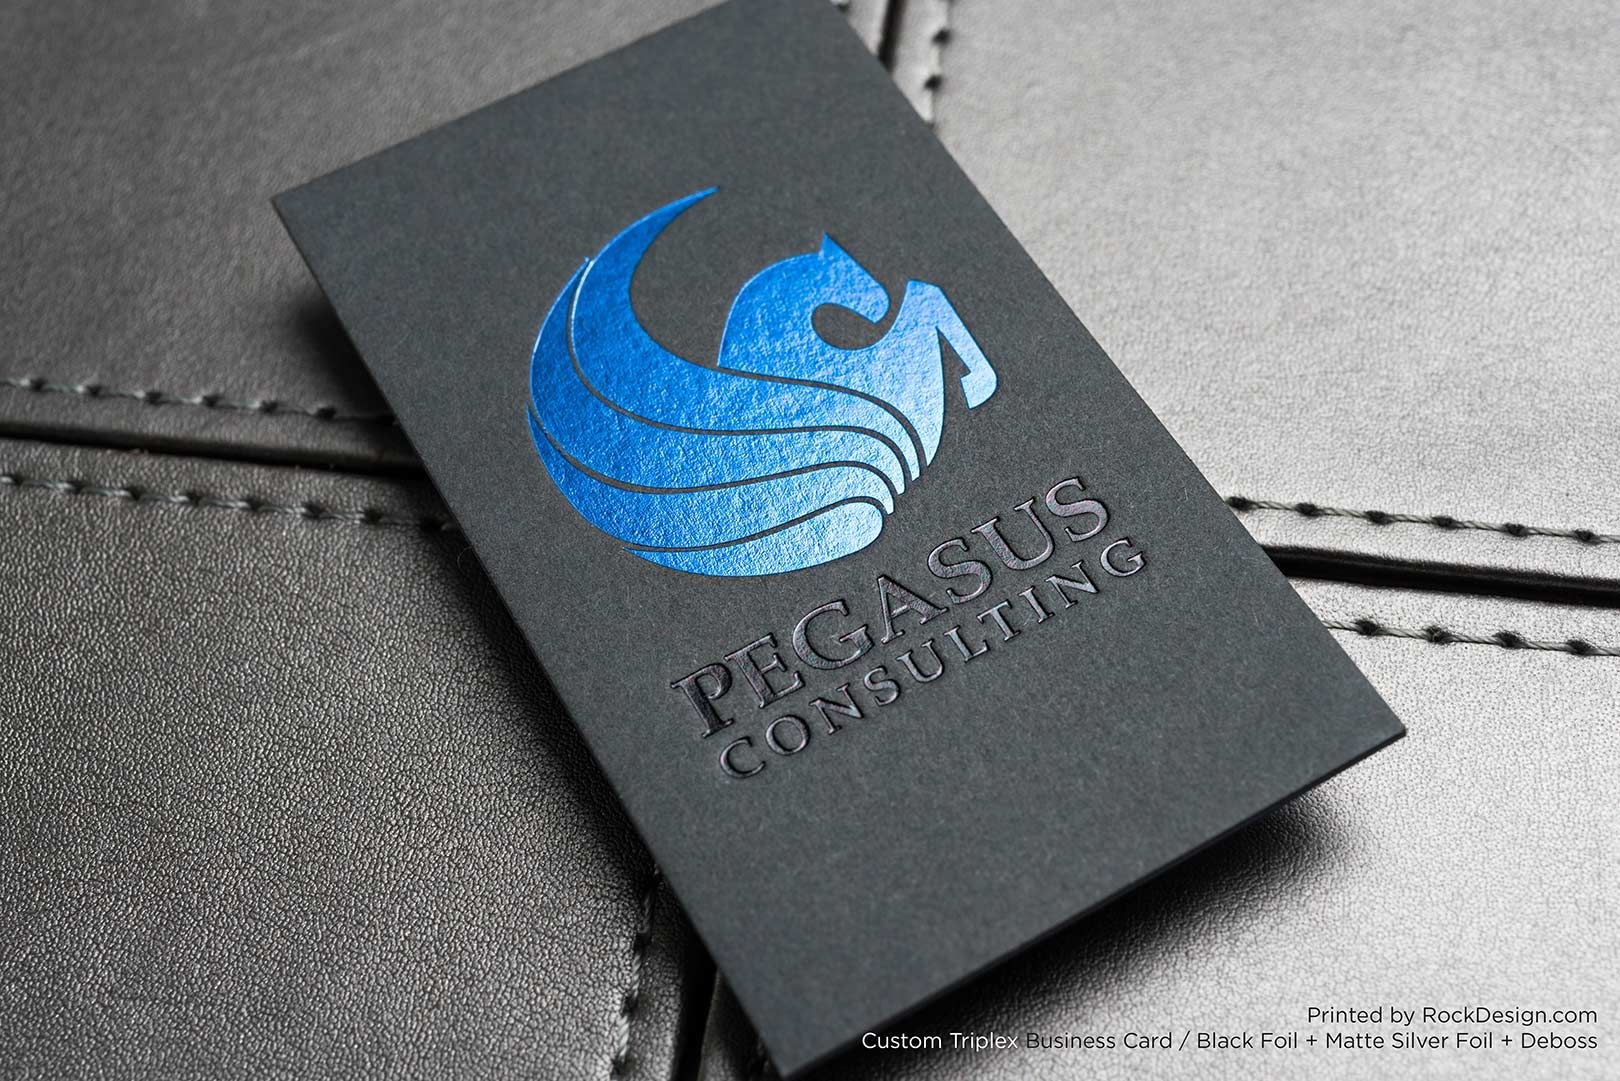 Pin by FREDD on Business Card | Pinterest | Business cards, Free ...